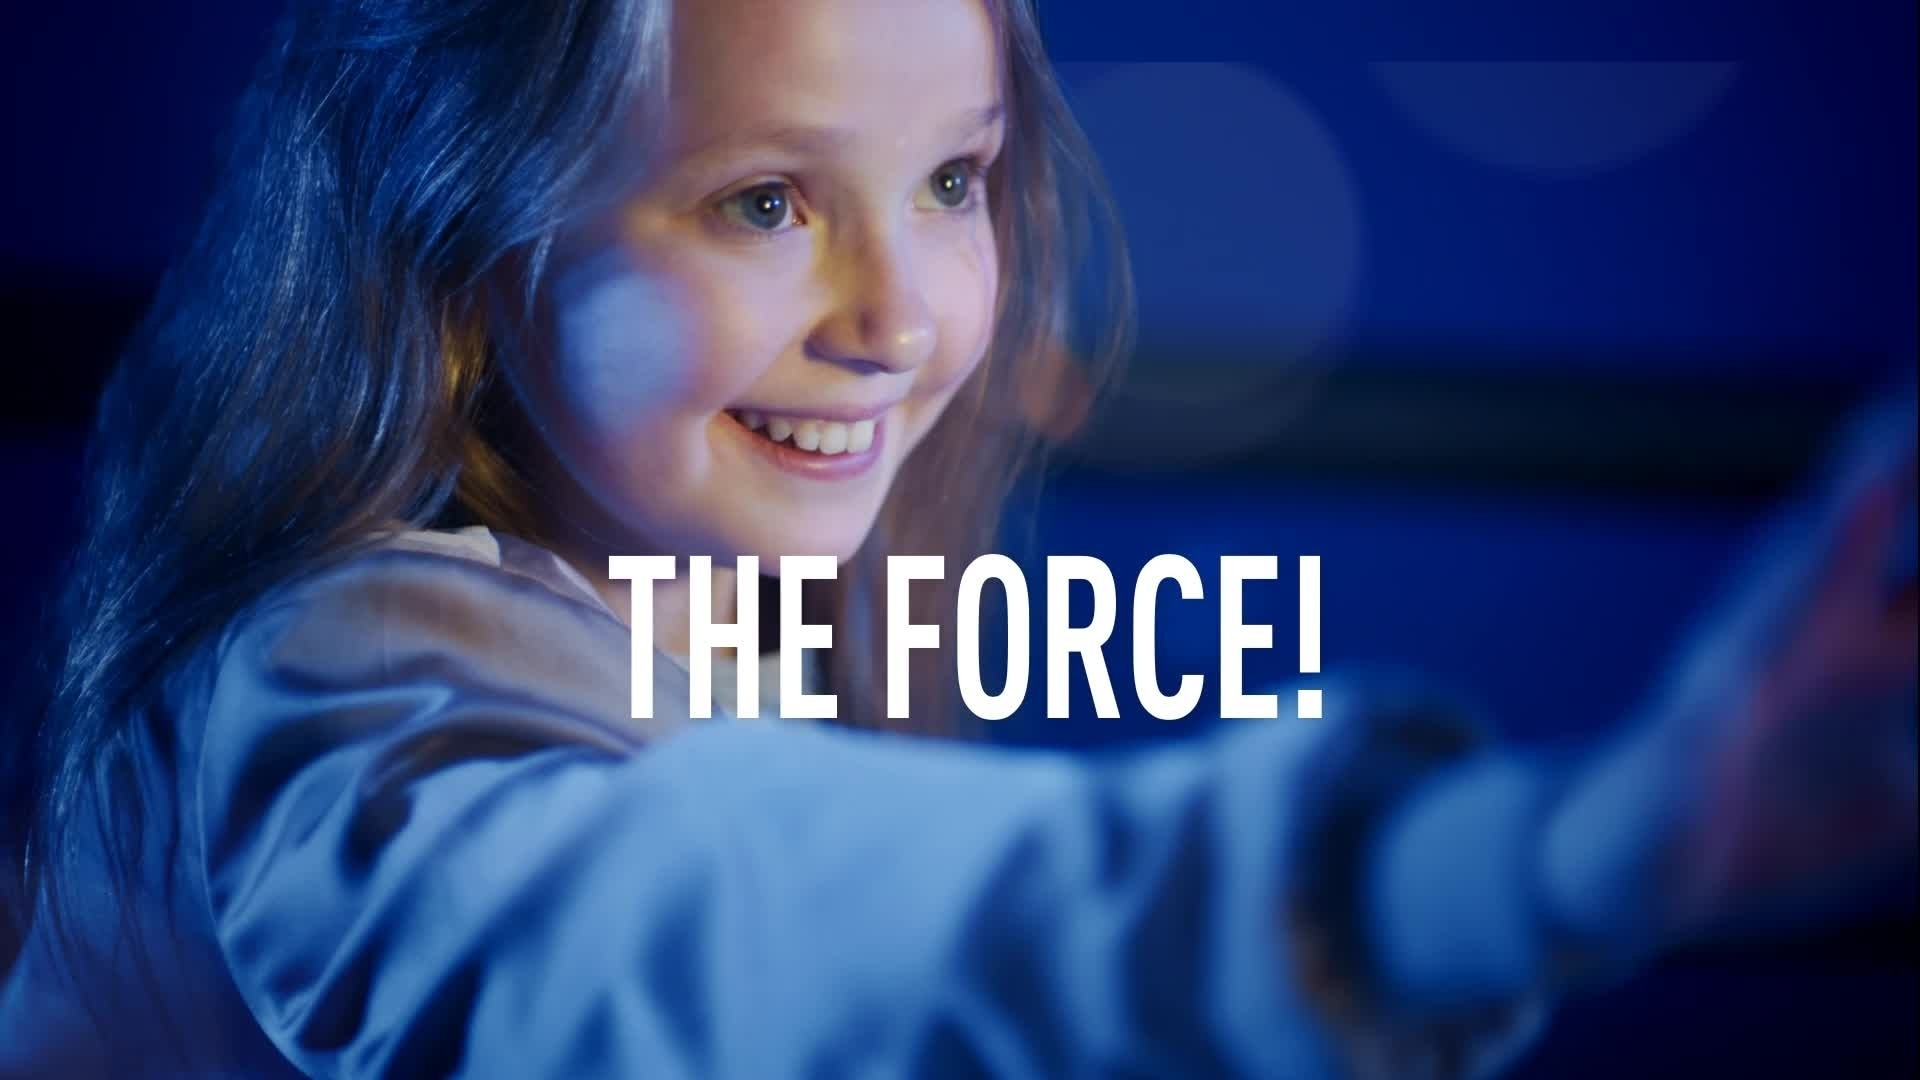 THE FORCE StarTour - Disneyland Paris